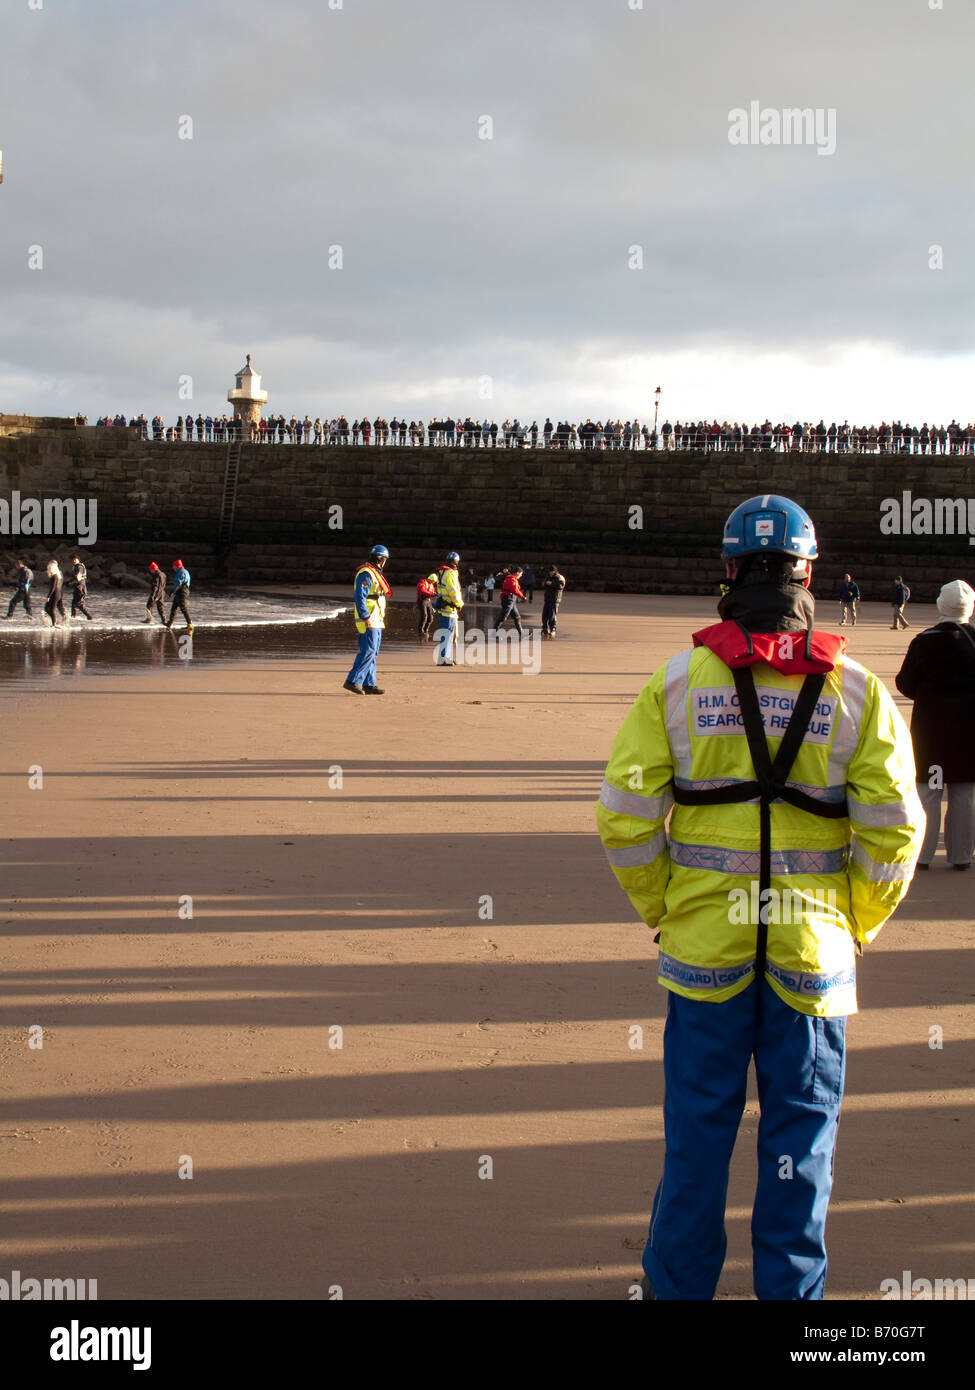 Boxing-day Search and Rescue personell on hand Safety first - Stock Image